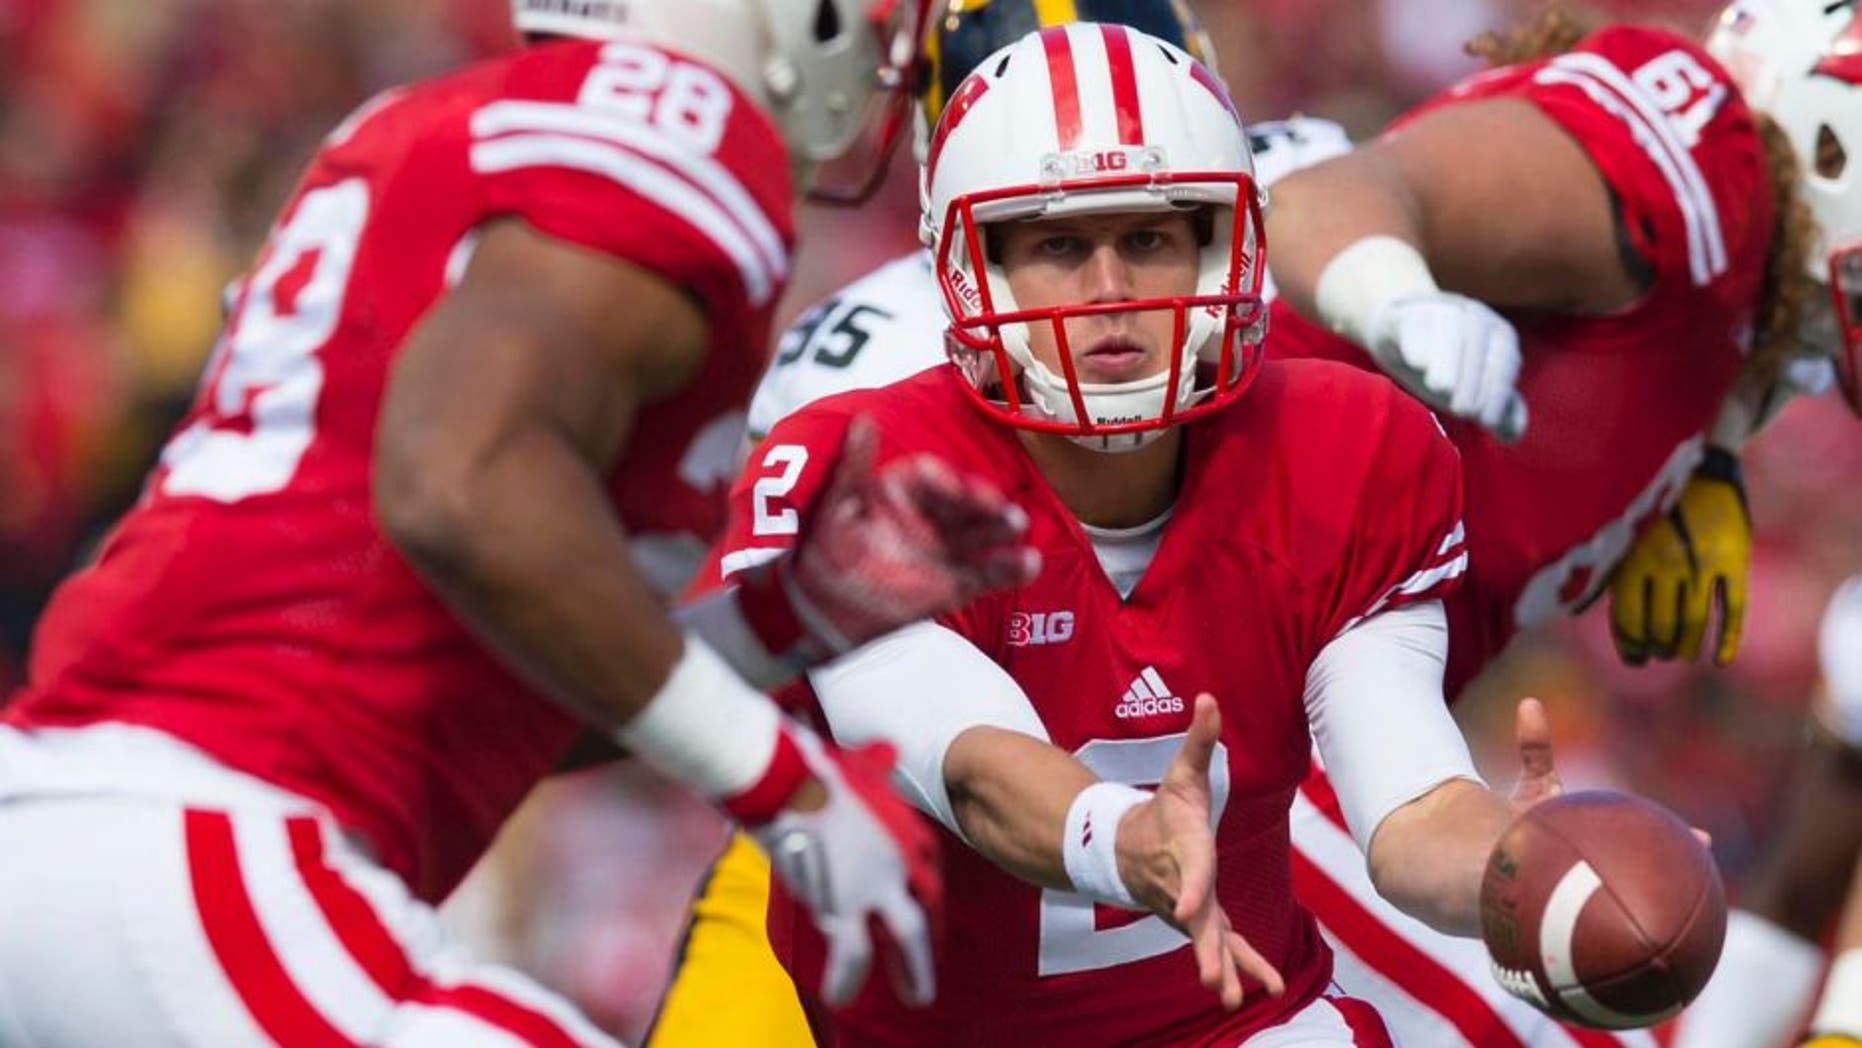 Wisconsin Badgers quarterback Joel Stave pitches the football to running back Taiwan Deal during the first quarter against the Iowa Hawkeyes at Camp Randall Stadium in Madison, Wis., on Saturday, Oct. 3, 2015.